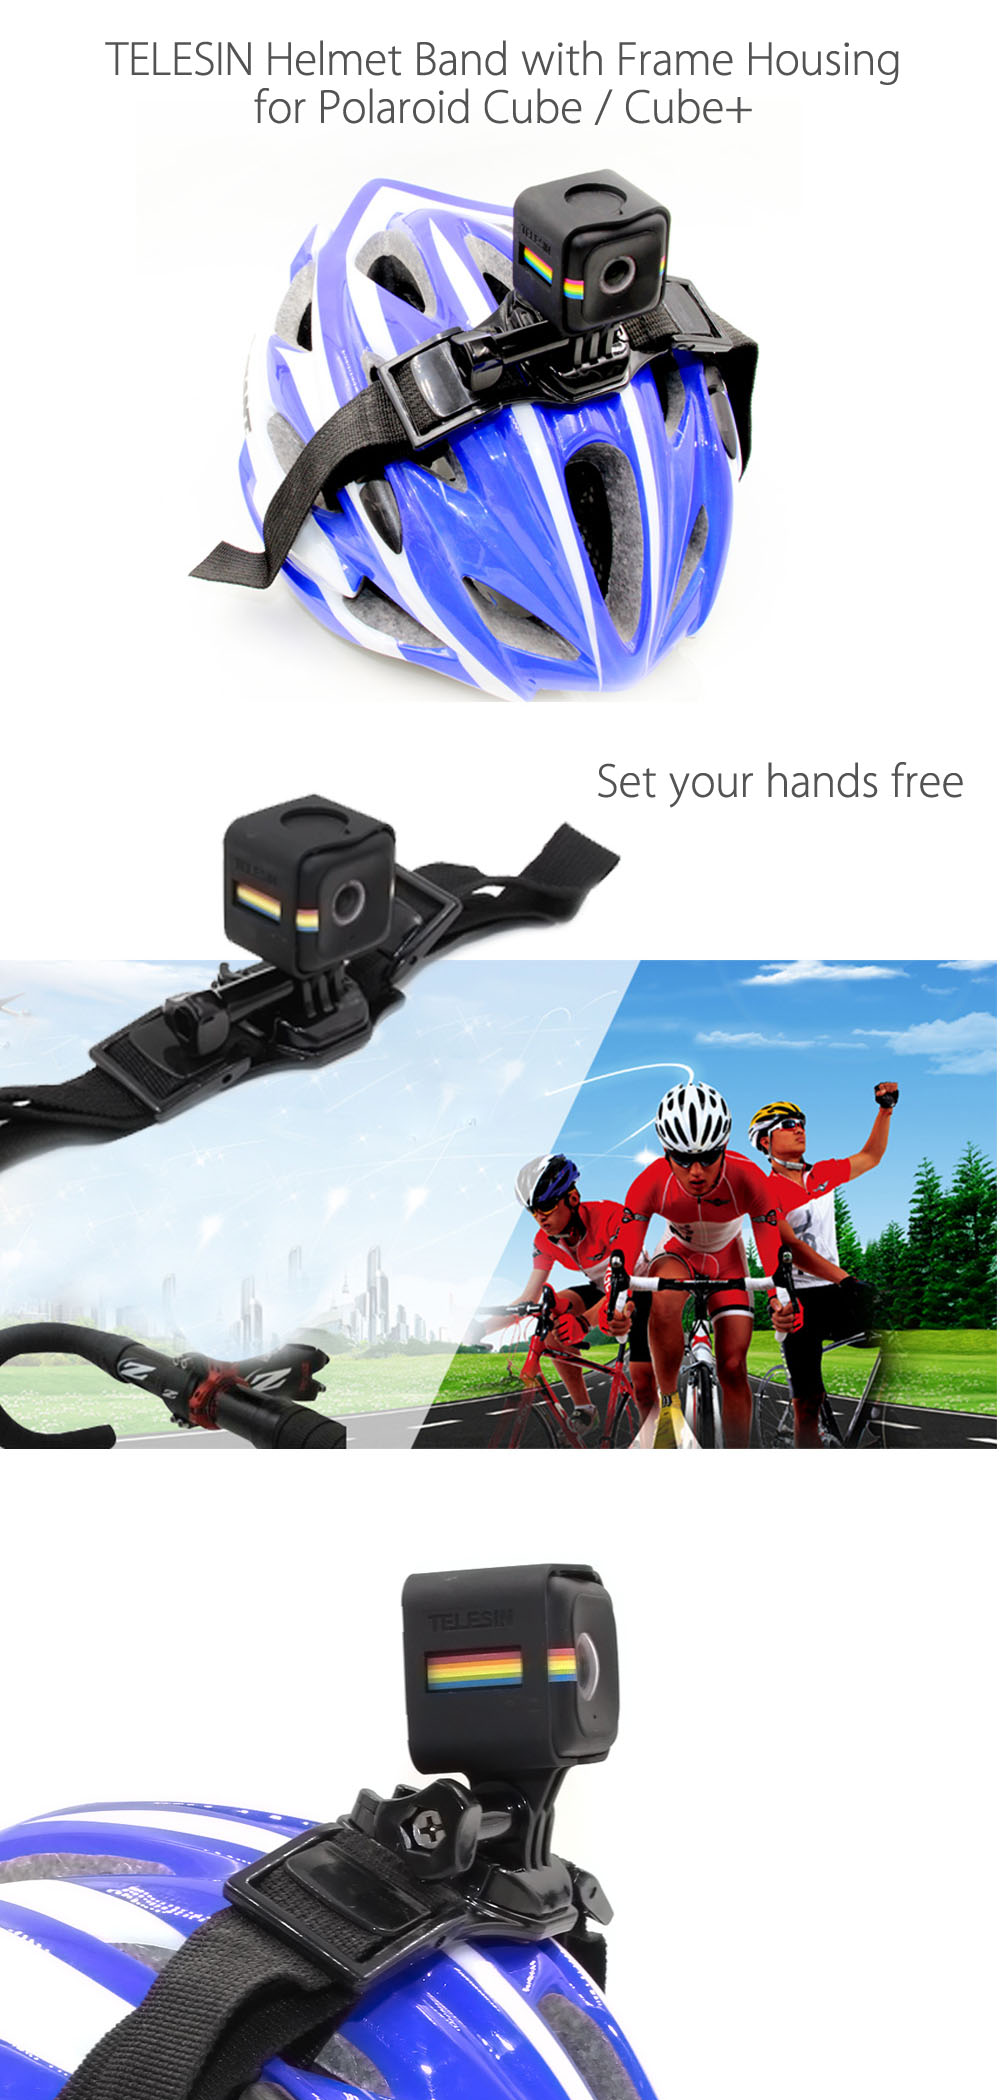 TELESIN Helmet Band with Cage Housing for Polaroid Cube / Cube+ Action Camera